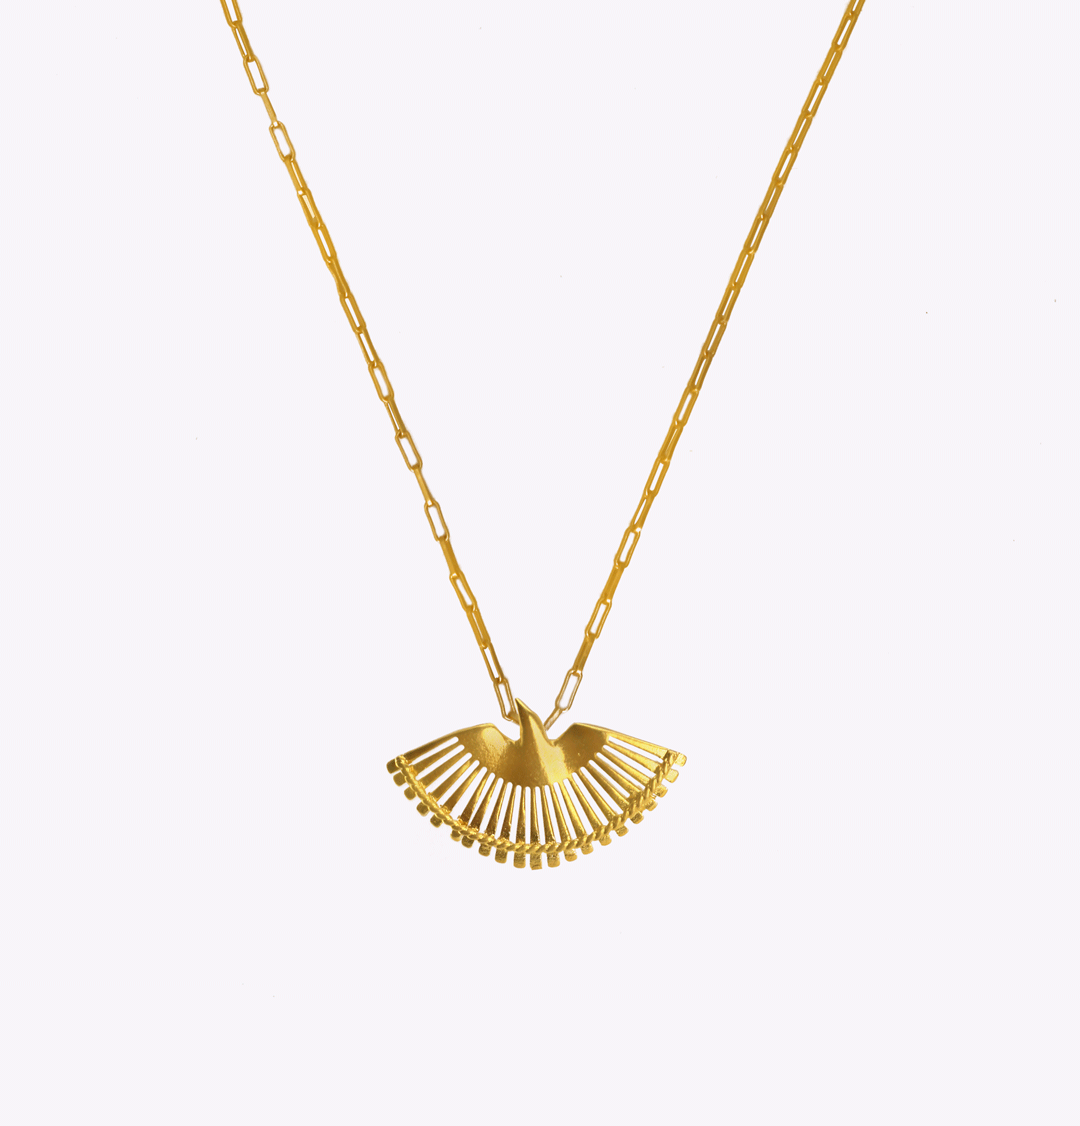 Fenix Oblong Large Chain Necklace